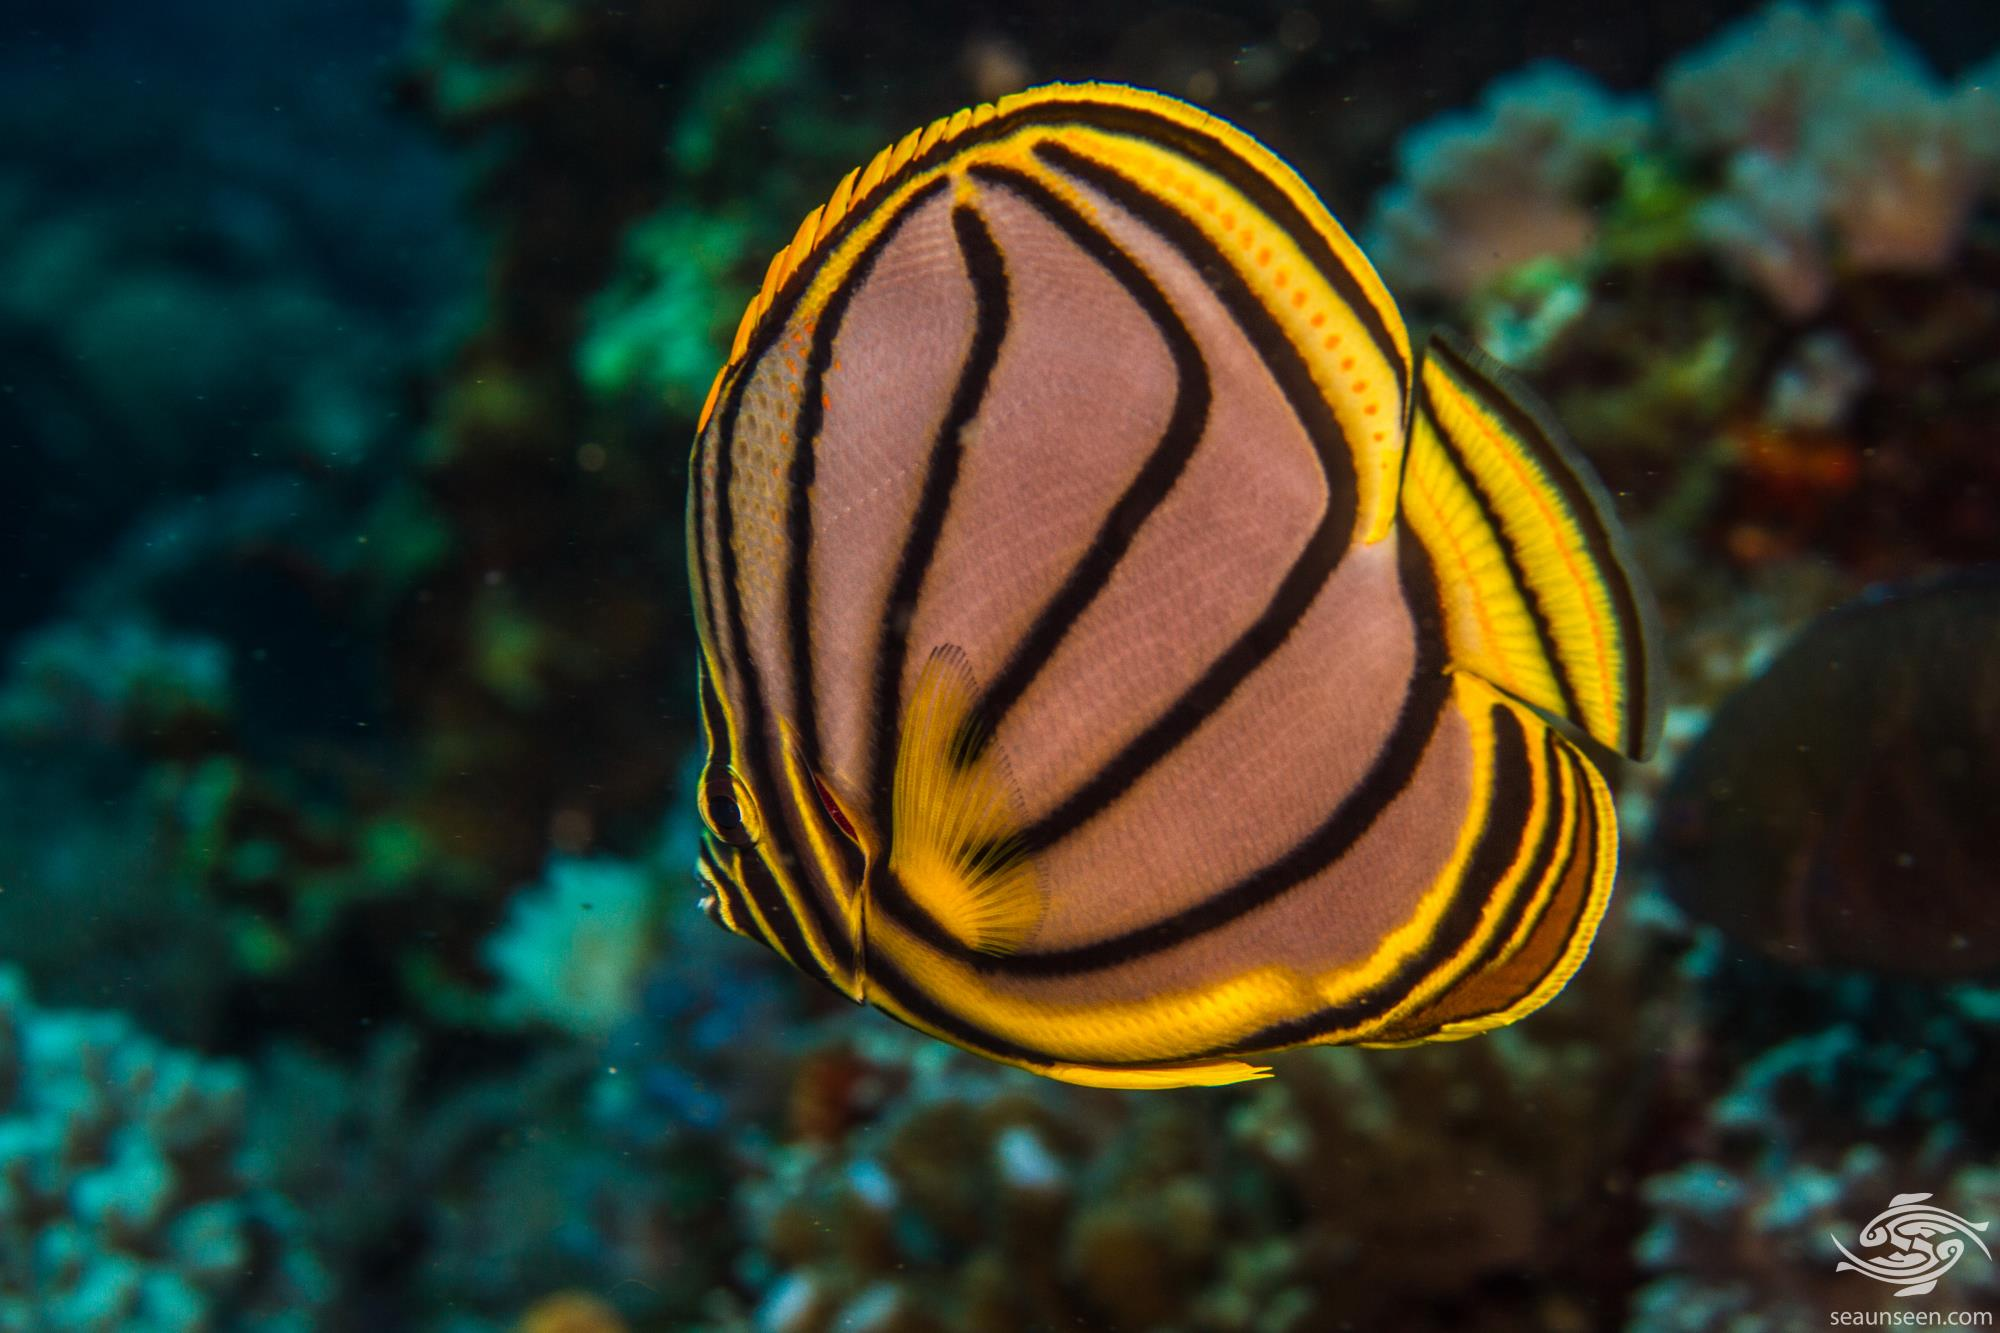 Meyer's Butterflyfish (Chaetodon meyeri) also known as Maypole Butterflyfish